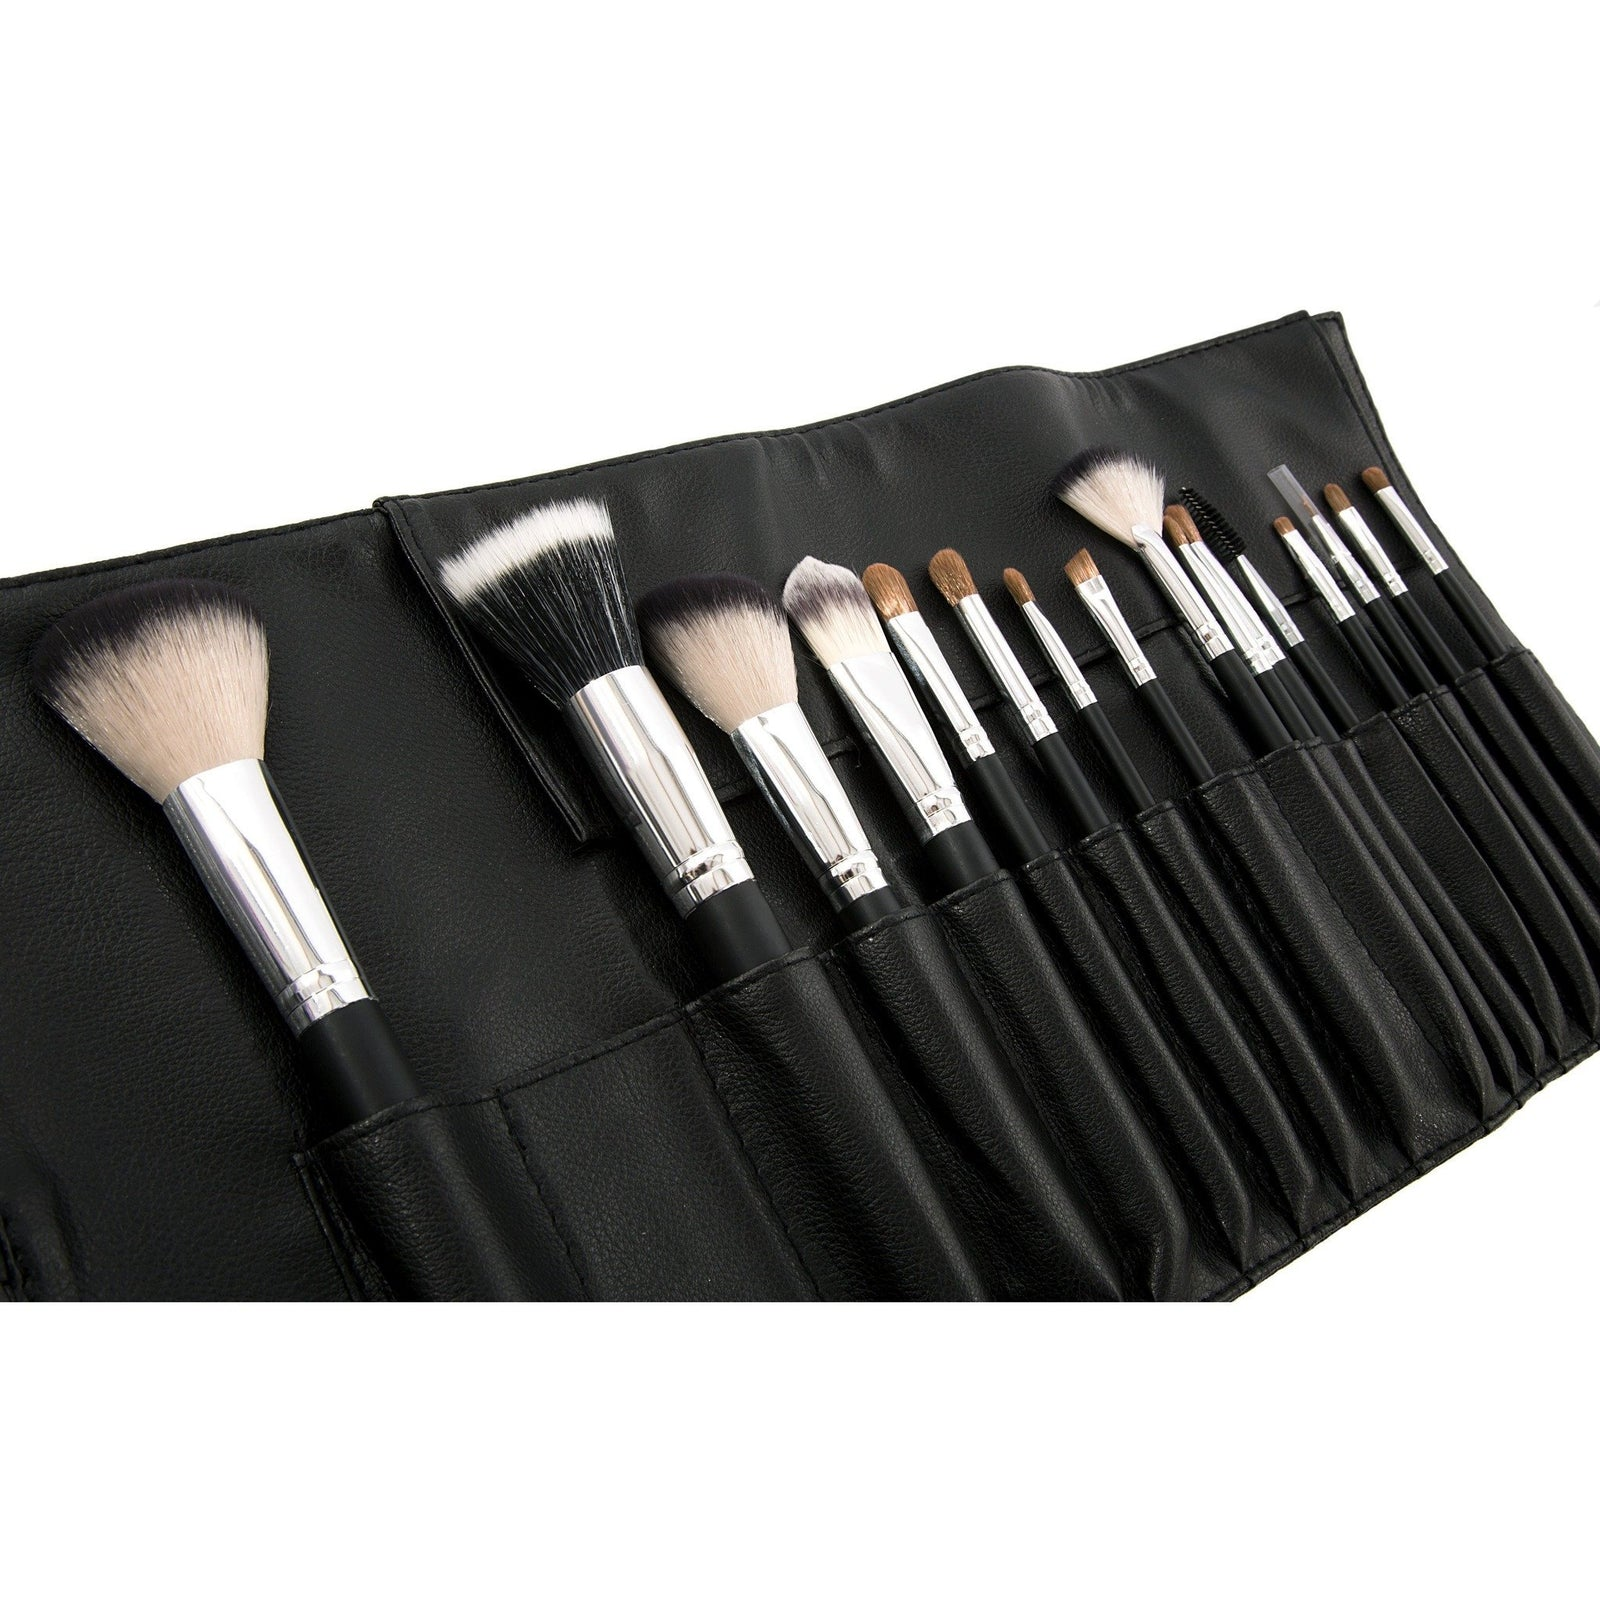 706 Pro Essentials Brush Set